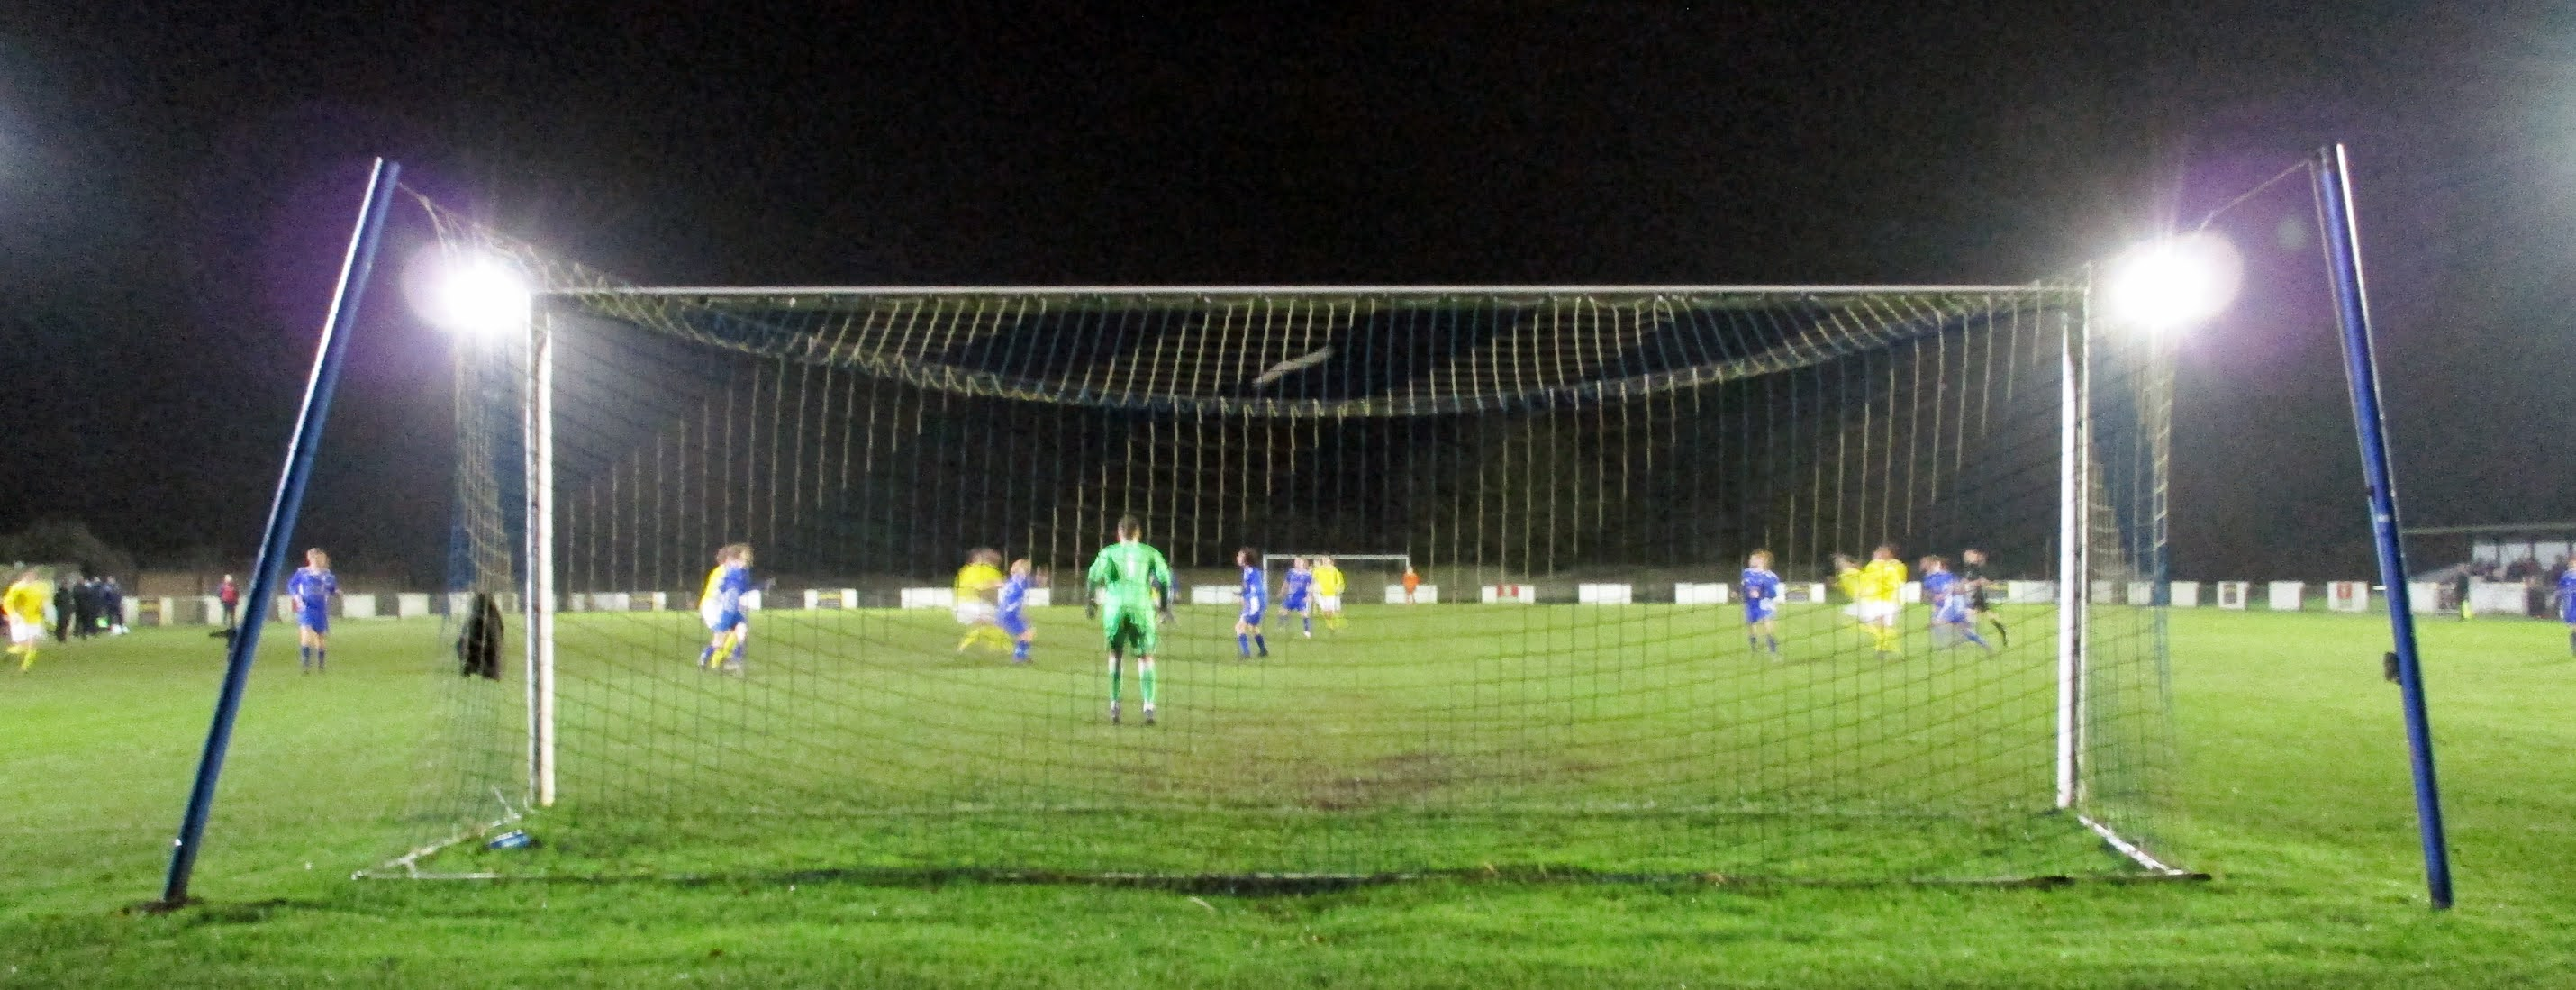 Behind the goal at The Rivermoor Stadium